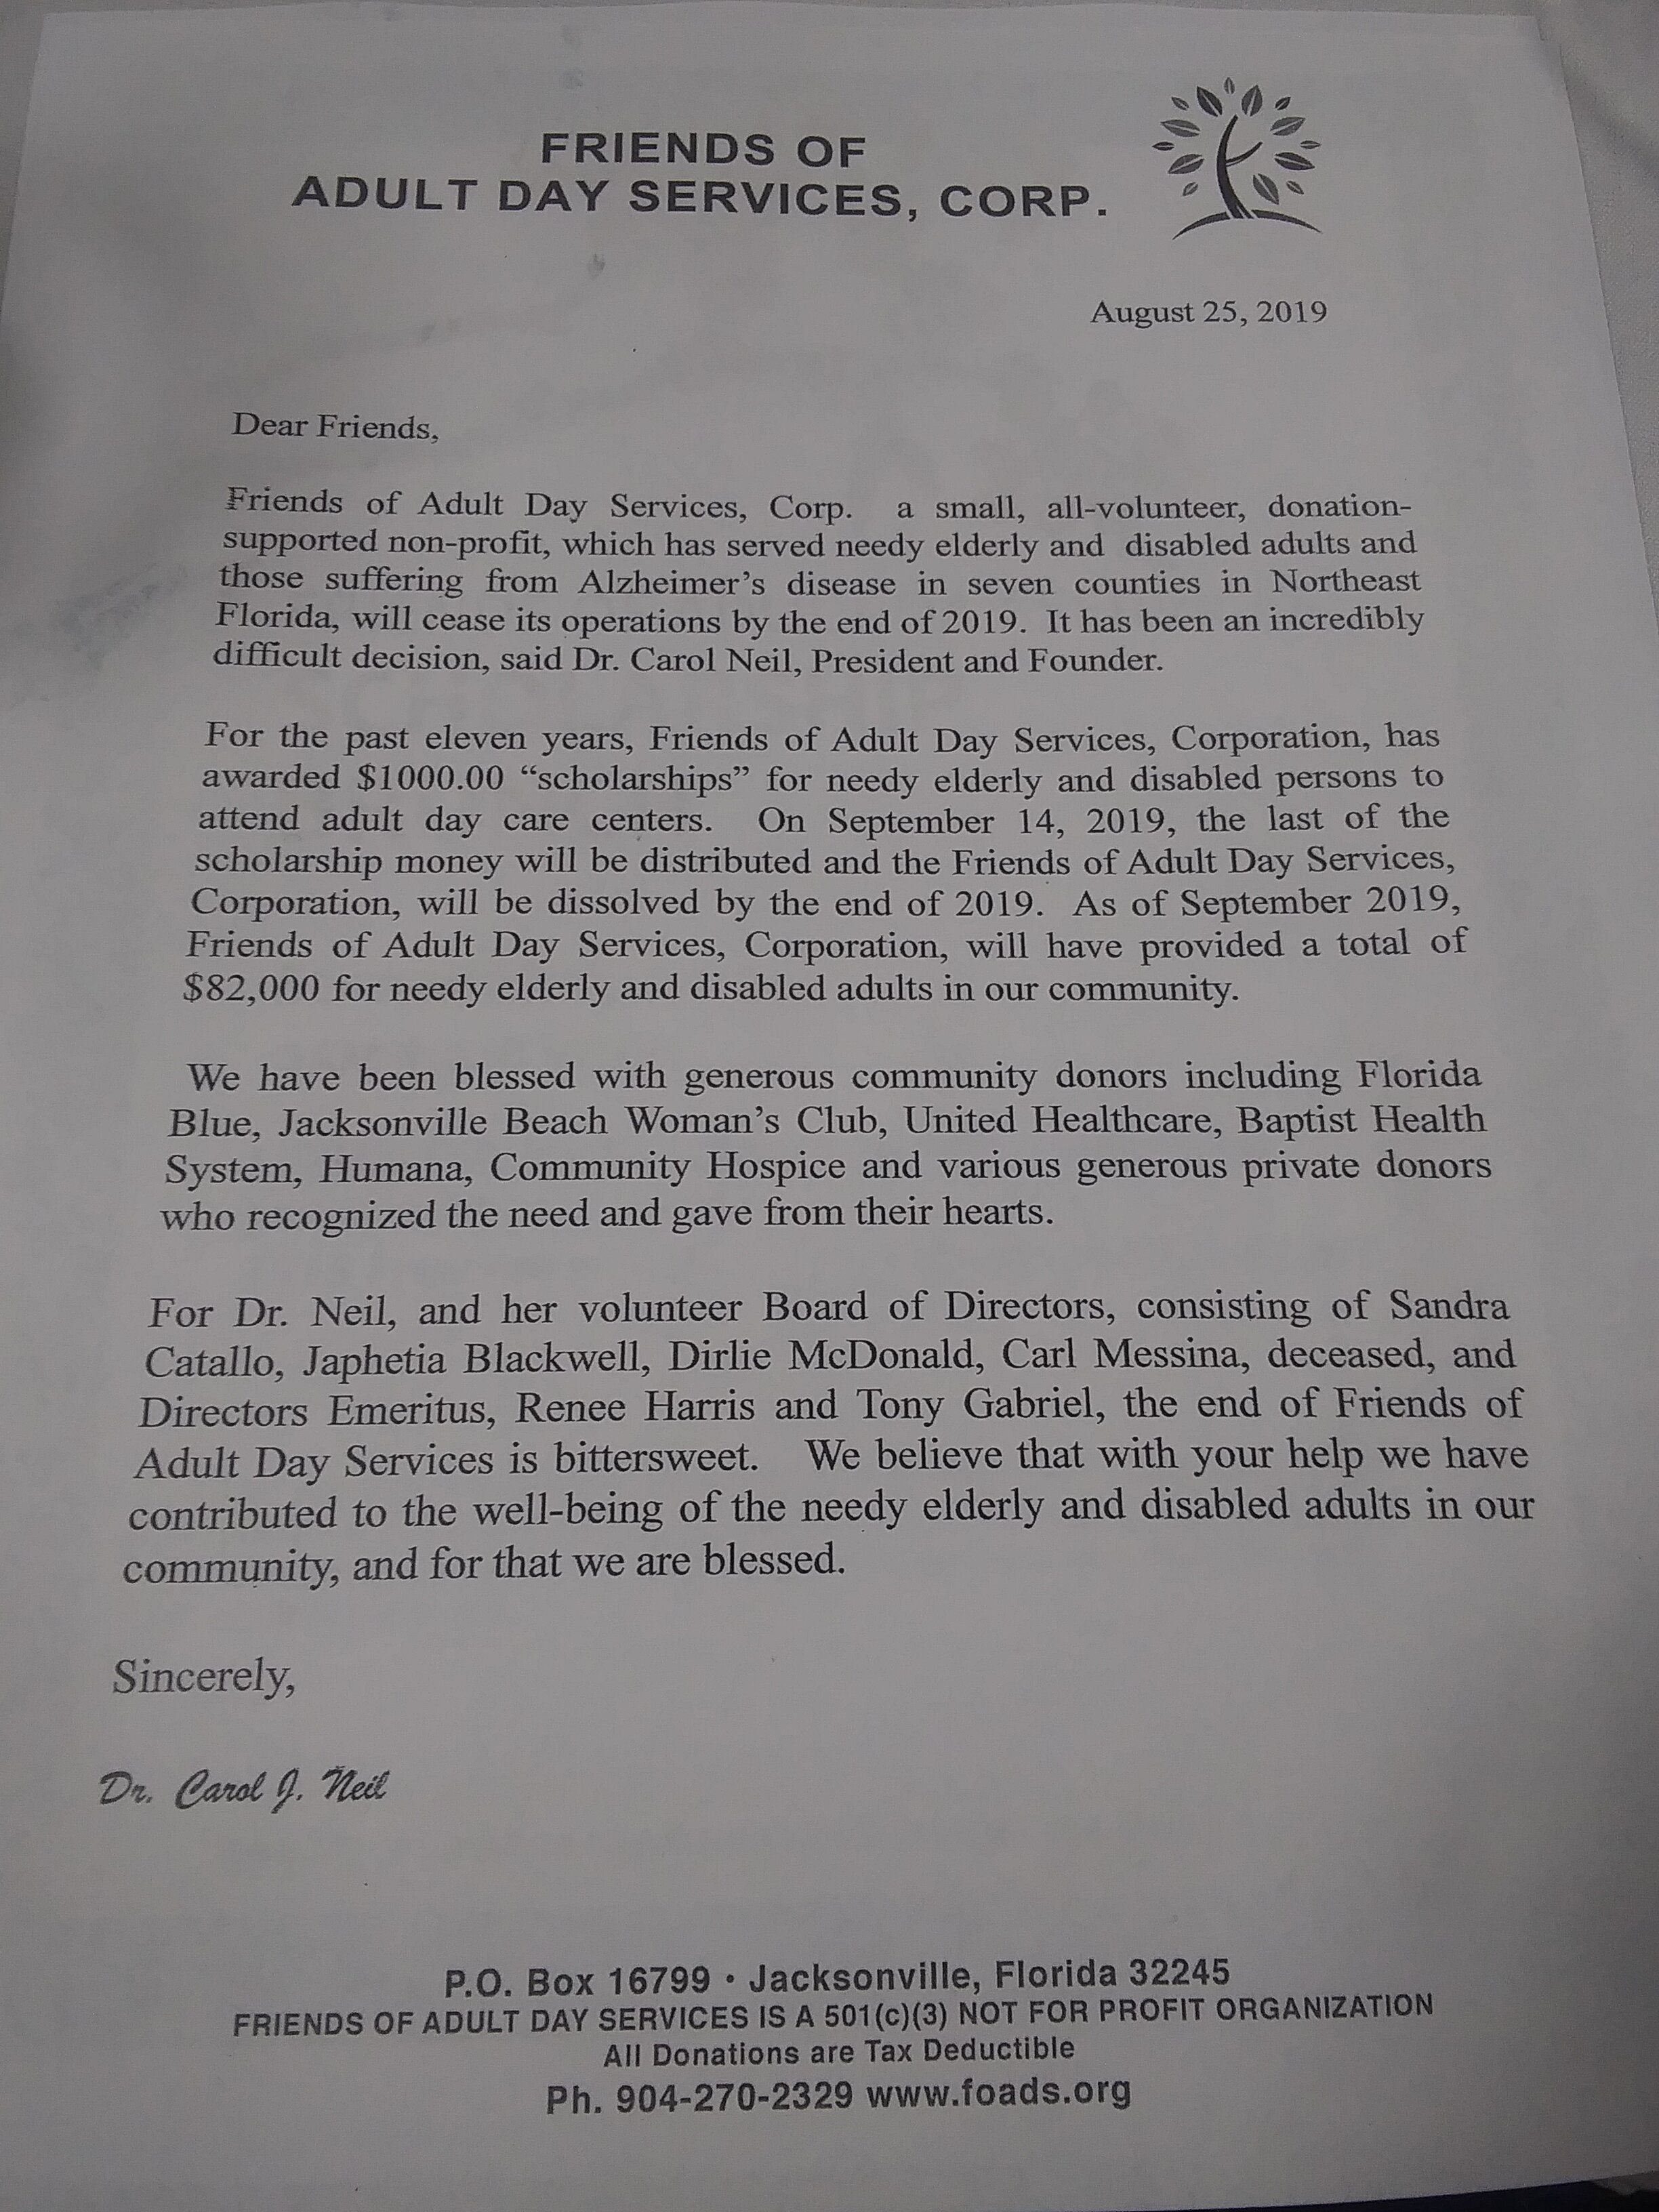 Friends Of Adult Day Services Letter 9-14-2019.jpg